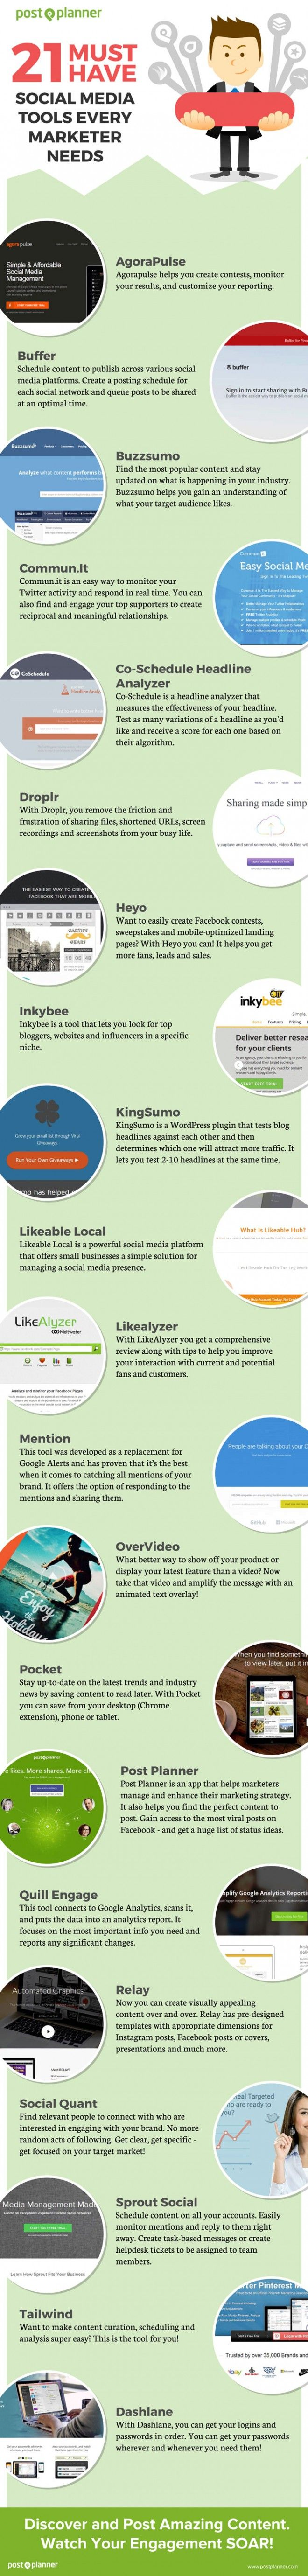 21 Social Media Tools for Smart Marketers #tools #socialmedia #media #social #digital #marketer #marketing Manuela Infante